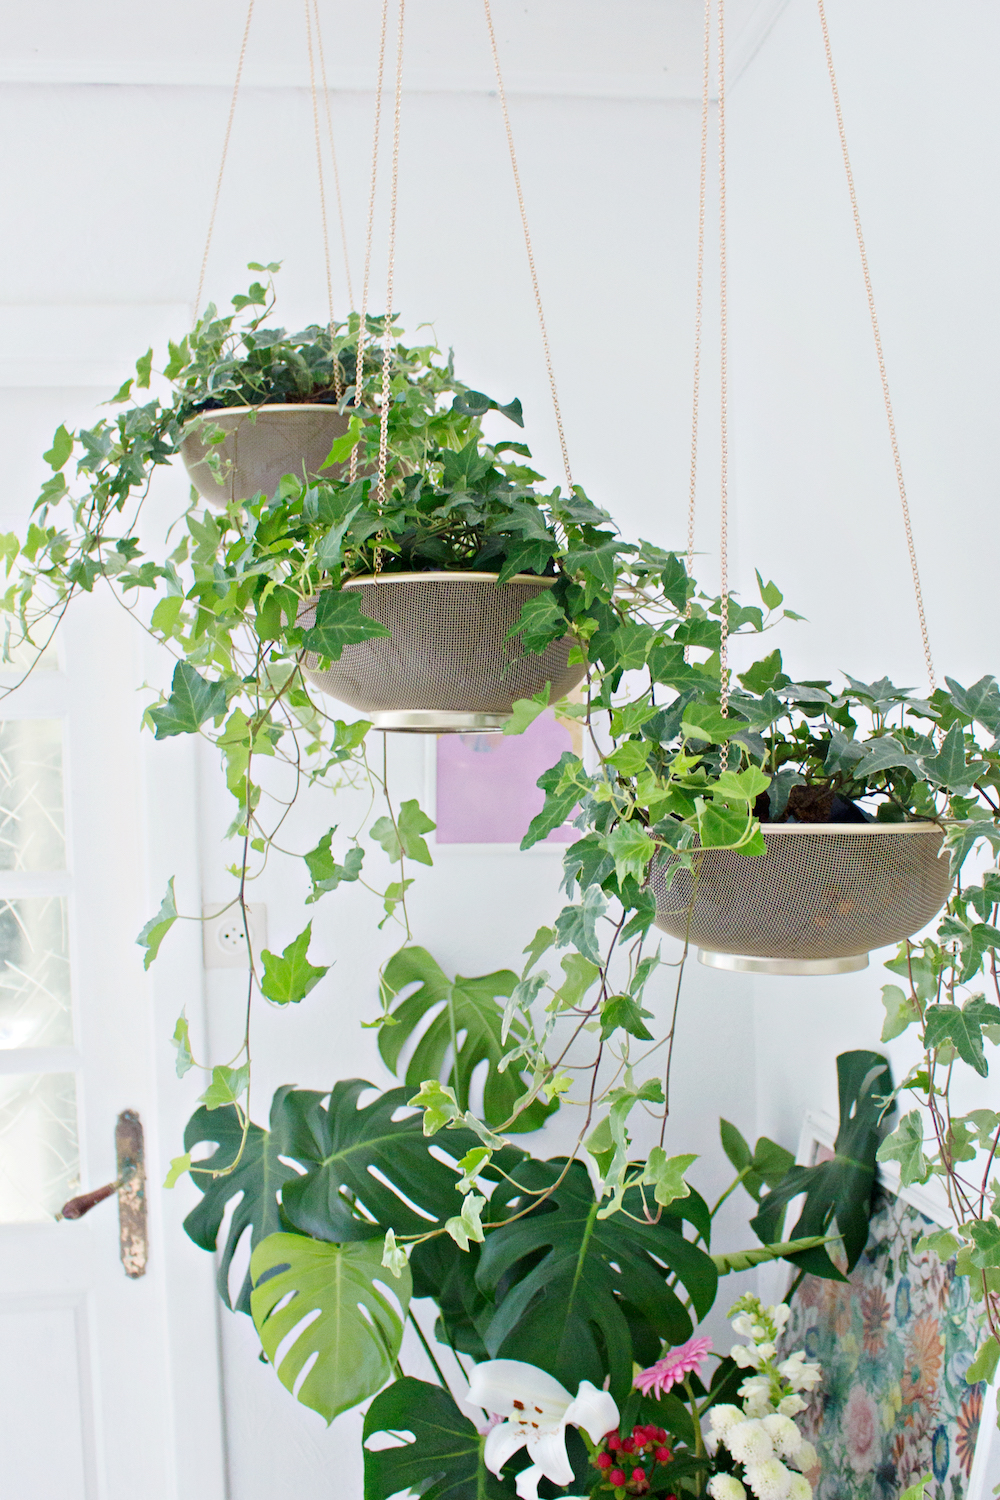 The Best Plants for Low Light Spaces